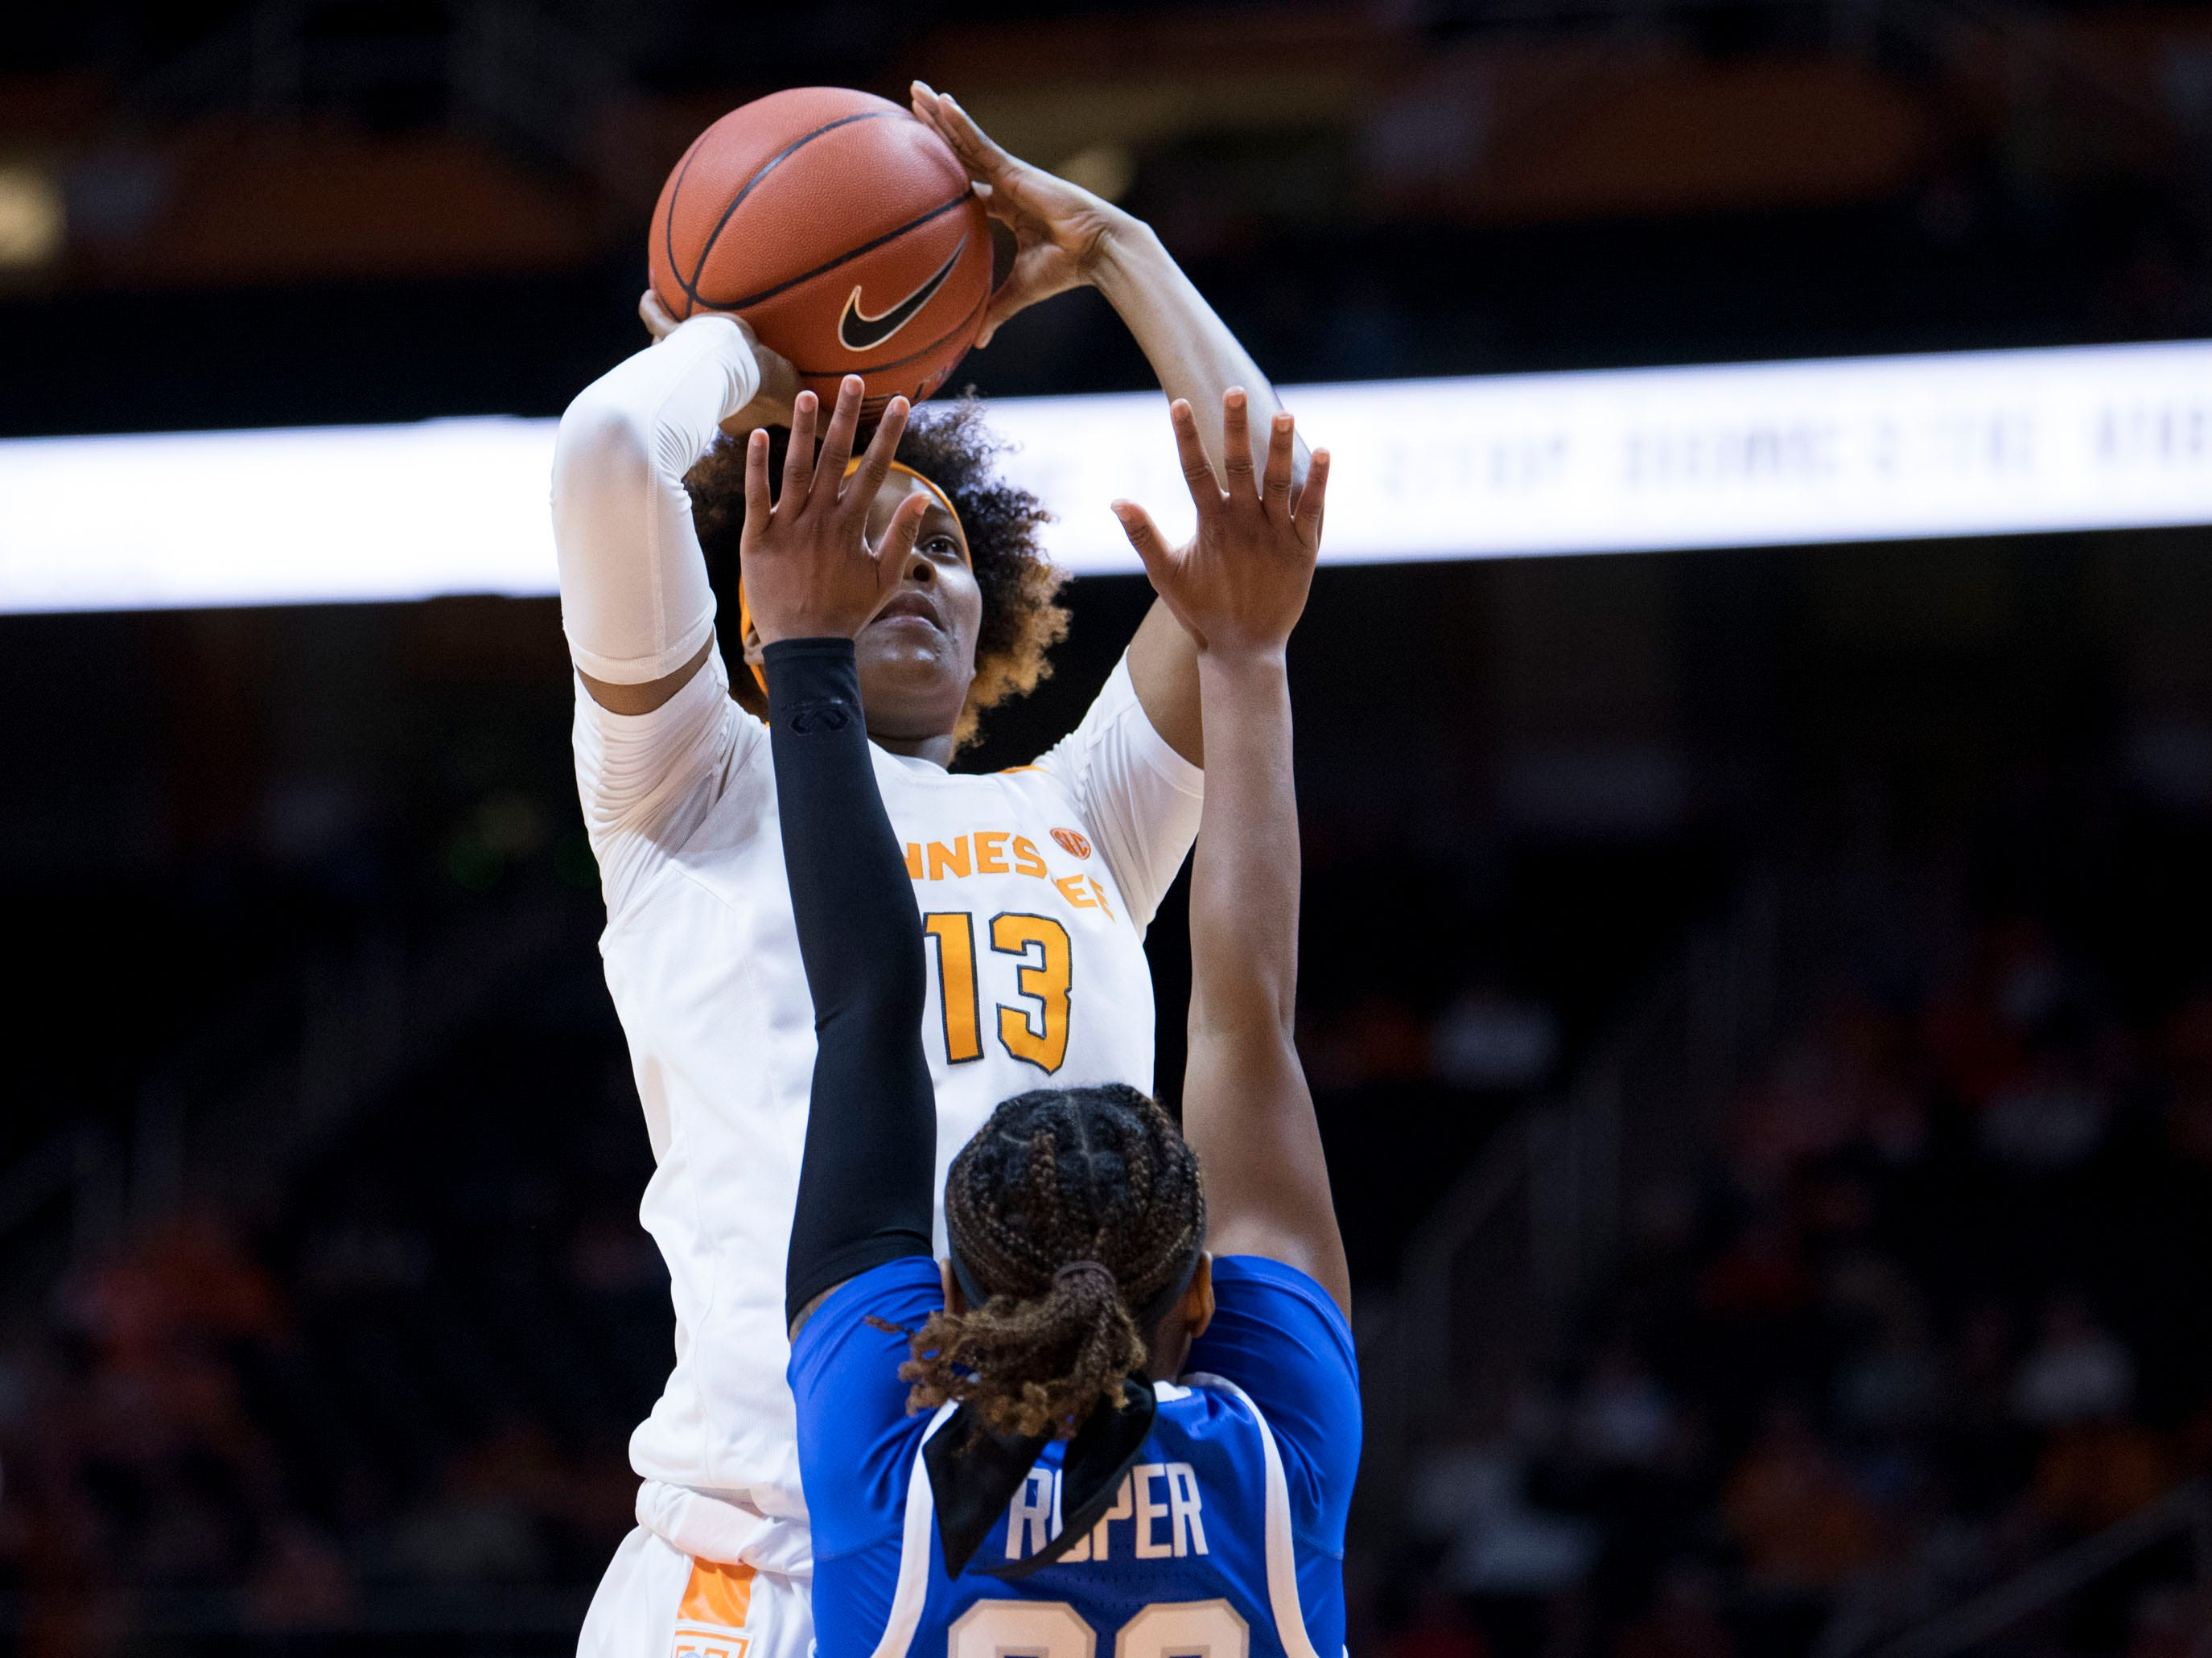 Tennessee's Jazmine Massengill (13) attempts to score while guarded by Kentucky's Jaida Roper (32) on Thursday, January 10, 2019.